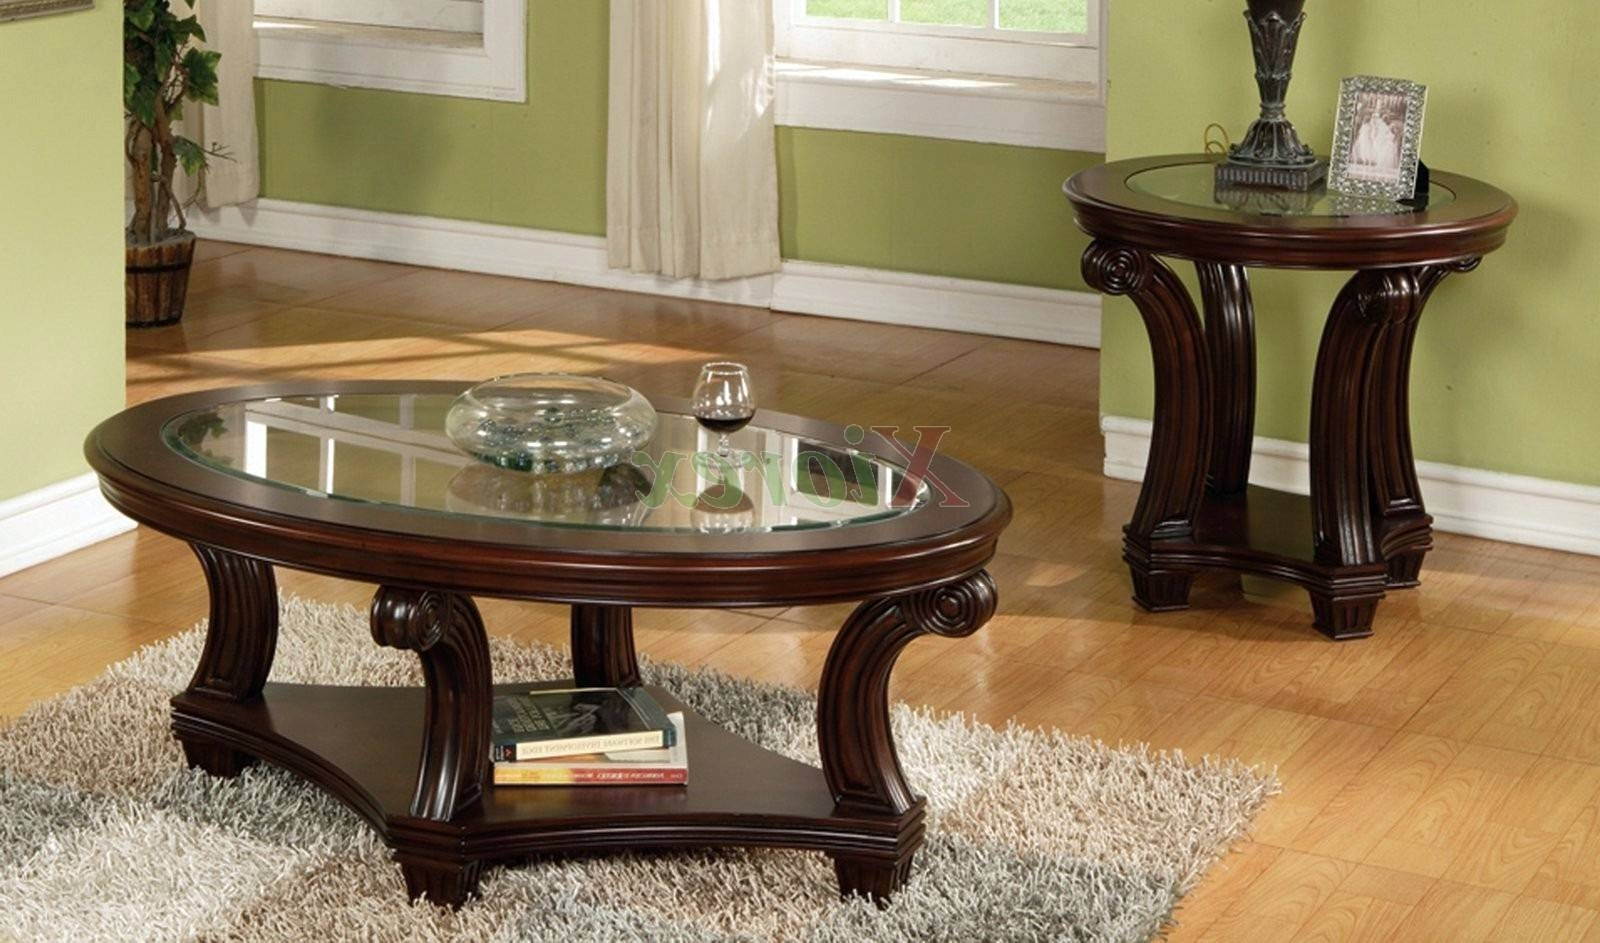 Confortable Dark Wood Coffee Table With Glass Top On Home Design for Dark Wood Coffee Tables With Glass Top (Image 10 of 30)